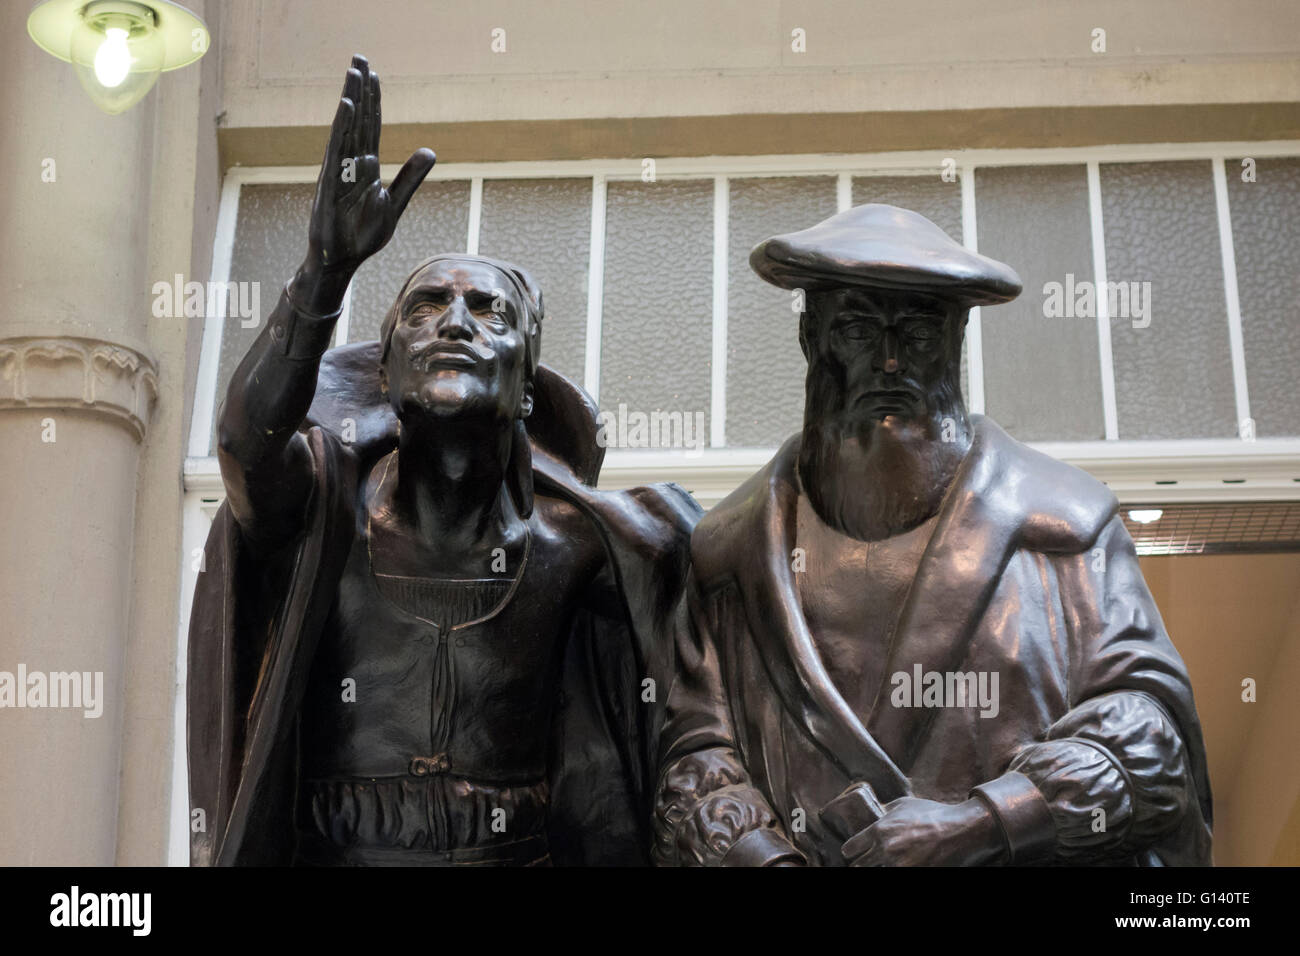 Statues of Faust and Mephisto in Auerbachs Keller, Leipzig - Stock Image